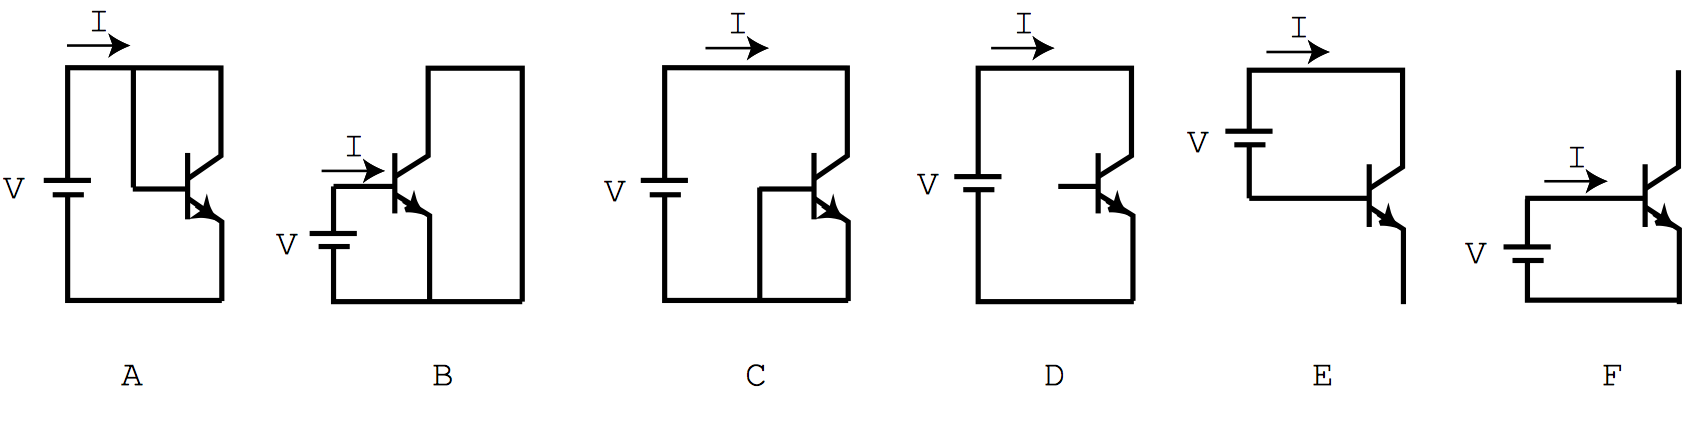 The figure below shows six possible ways of connec